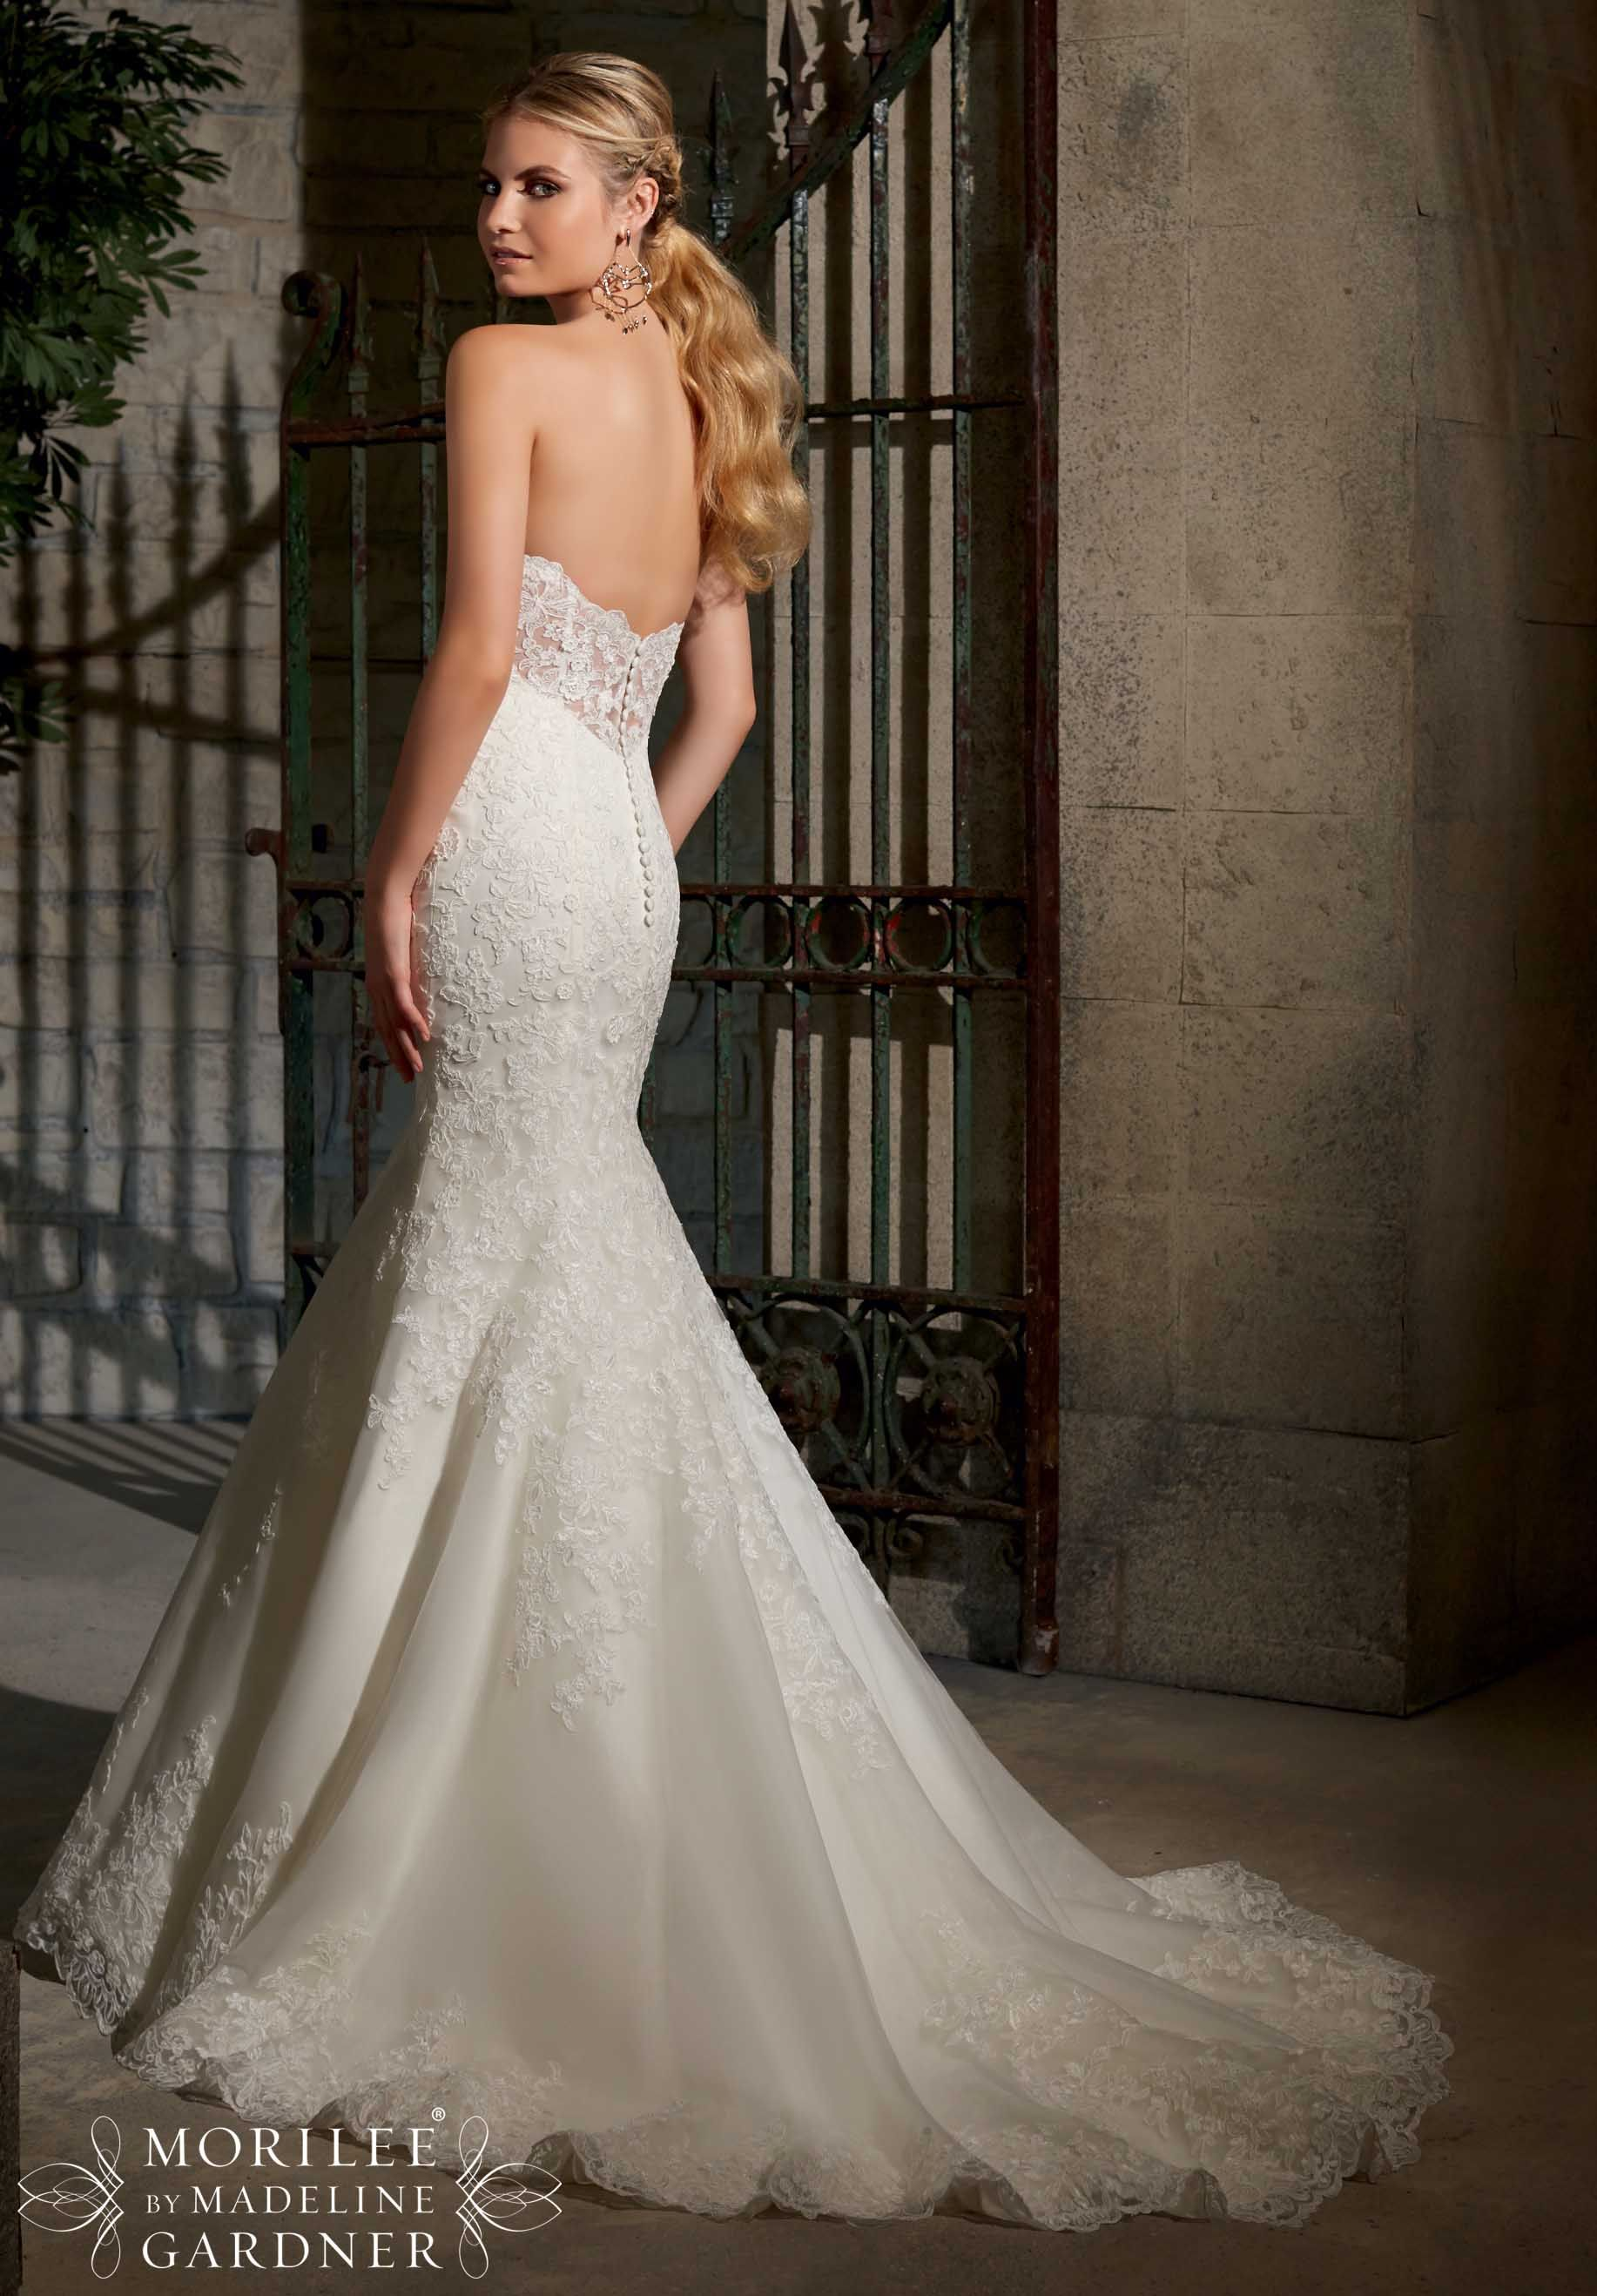 Mori lee madeline gardner wedding dress   Bridal Gowns  Dresses Elegant Alencon Lace on Net with Wide